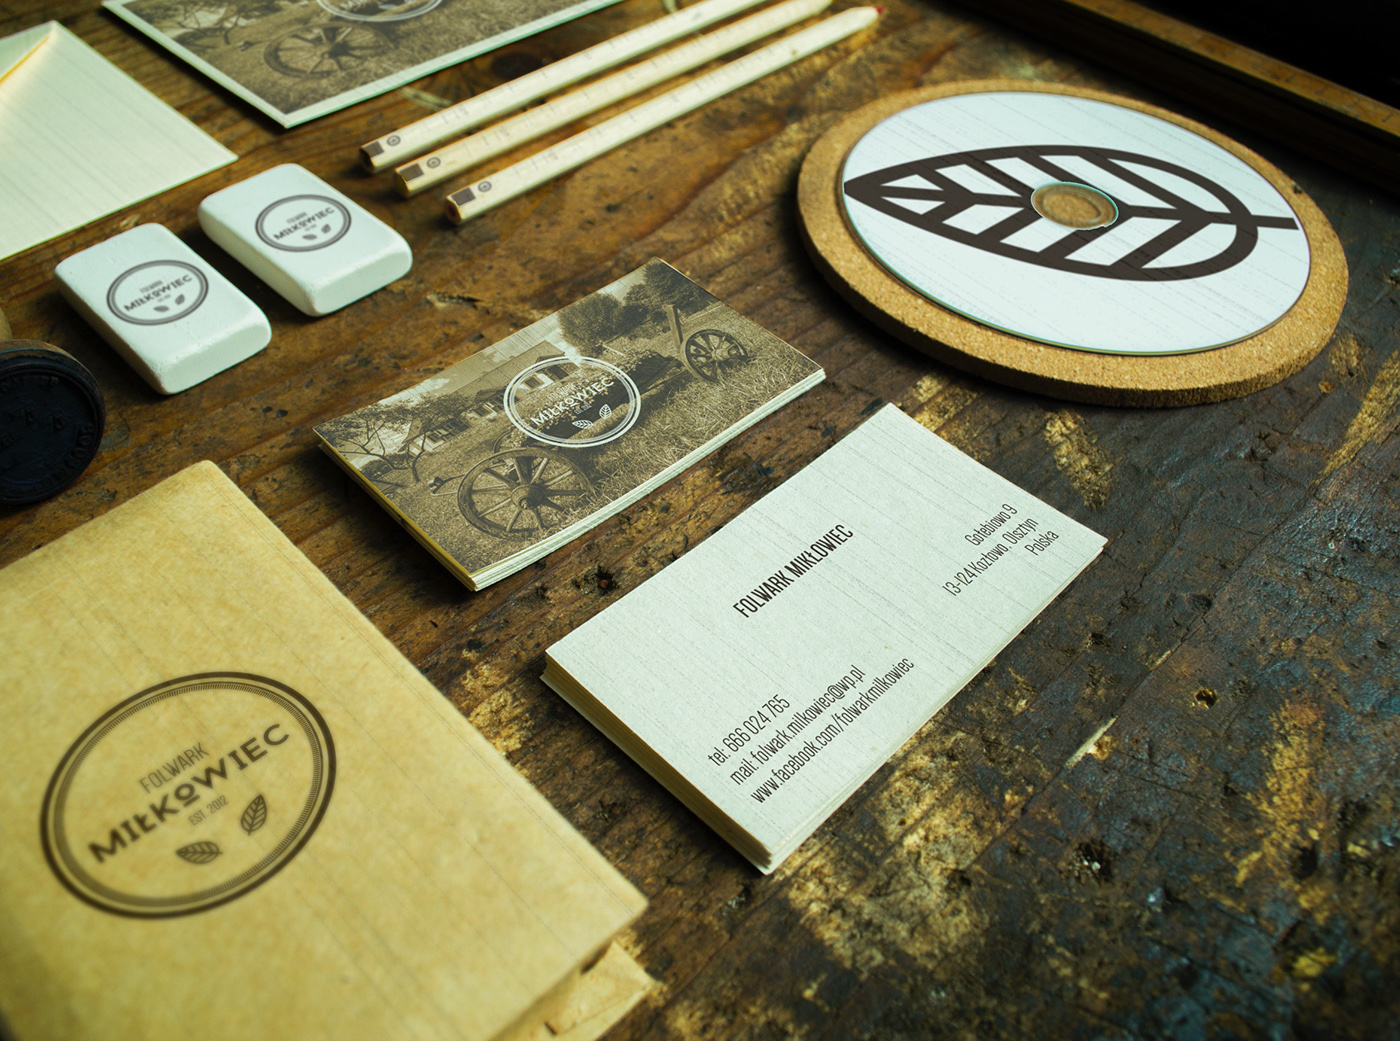 folwark mikłowiec Damian Chmiel logo Hipster Corporate Identity Stationery print old style vintage wood ID